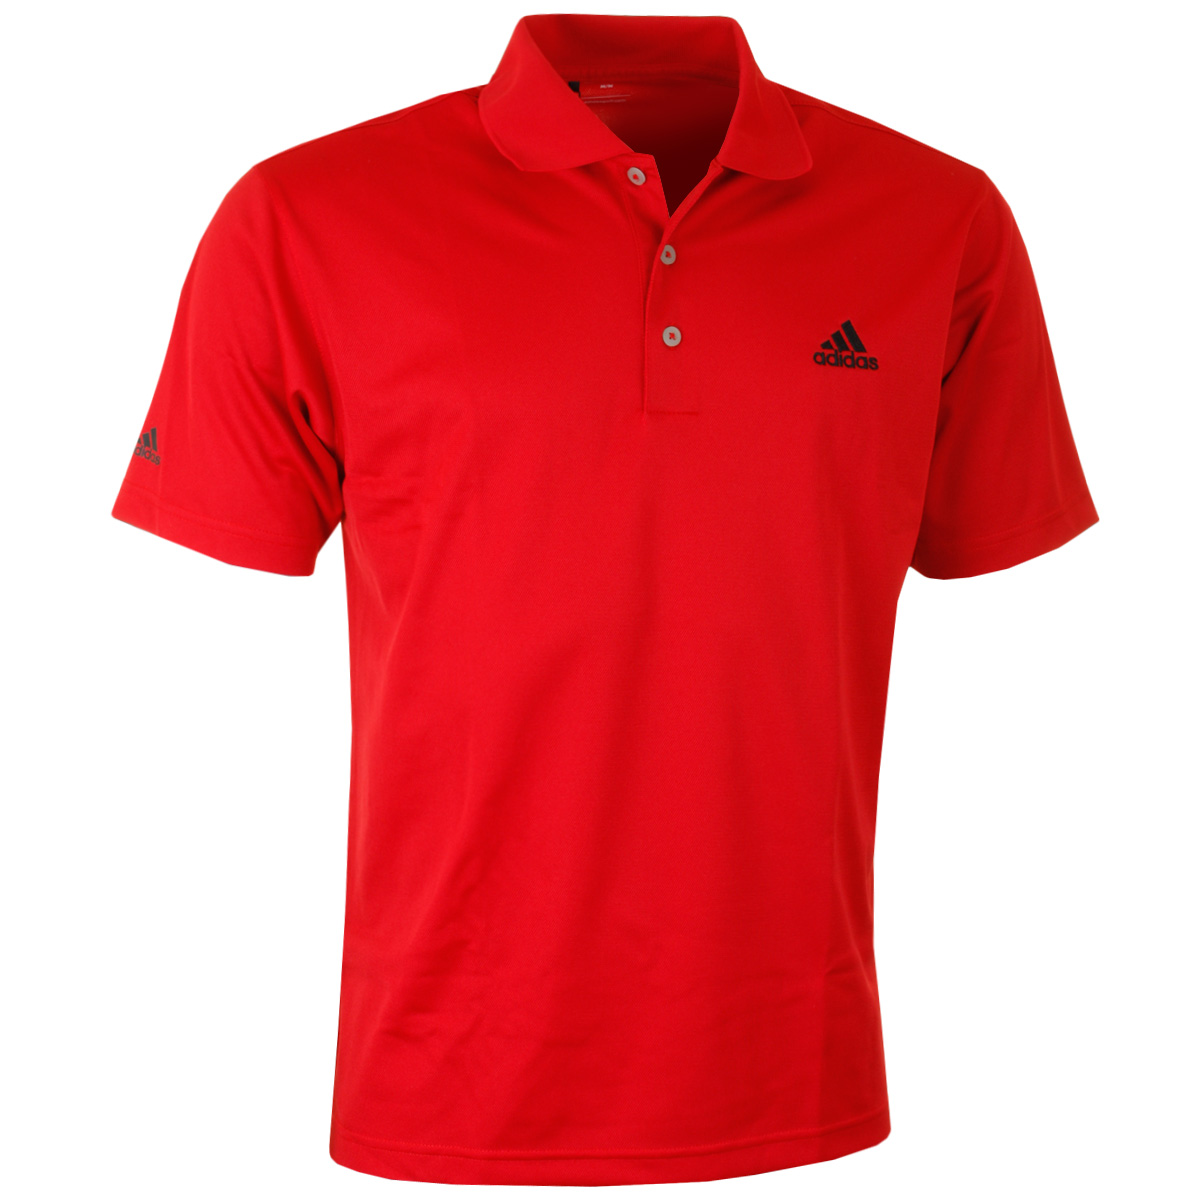 Adidas golf mens climalite basic tour logo bespoke tech for Polo shirts with logos